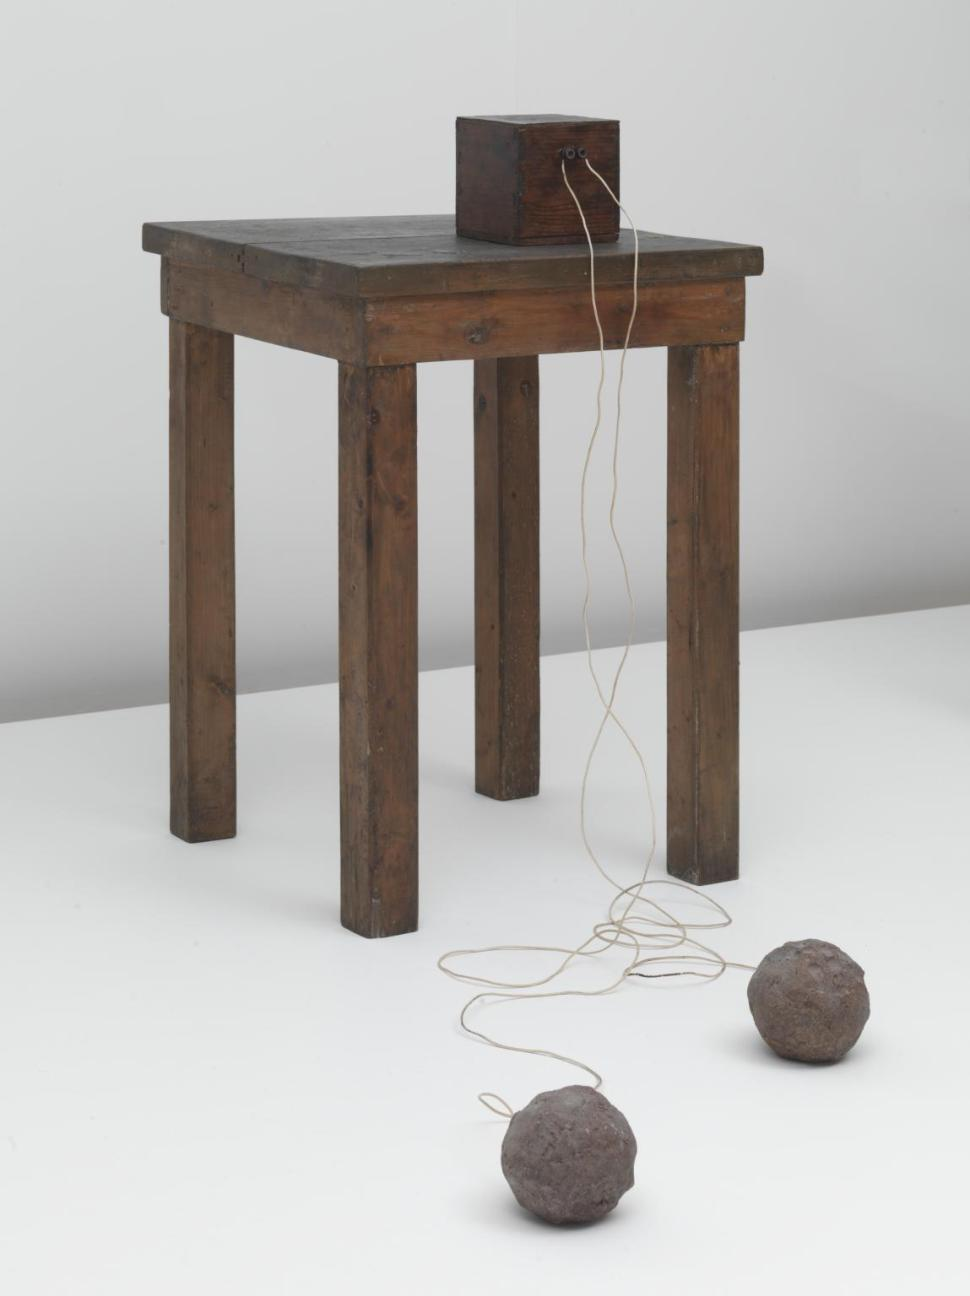 Table with Accumulator 1958-85 by Joseph Beuys 1921-1986